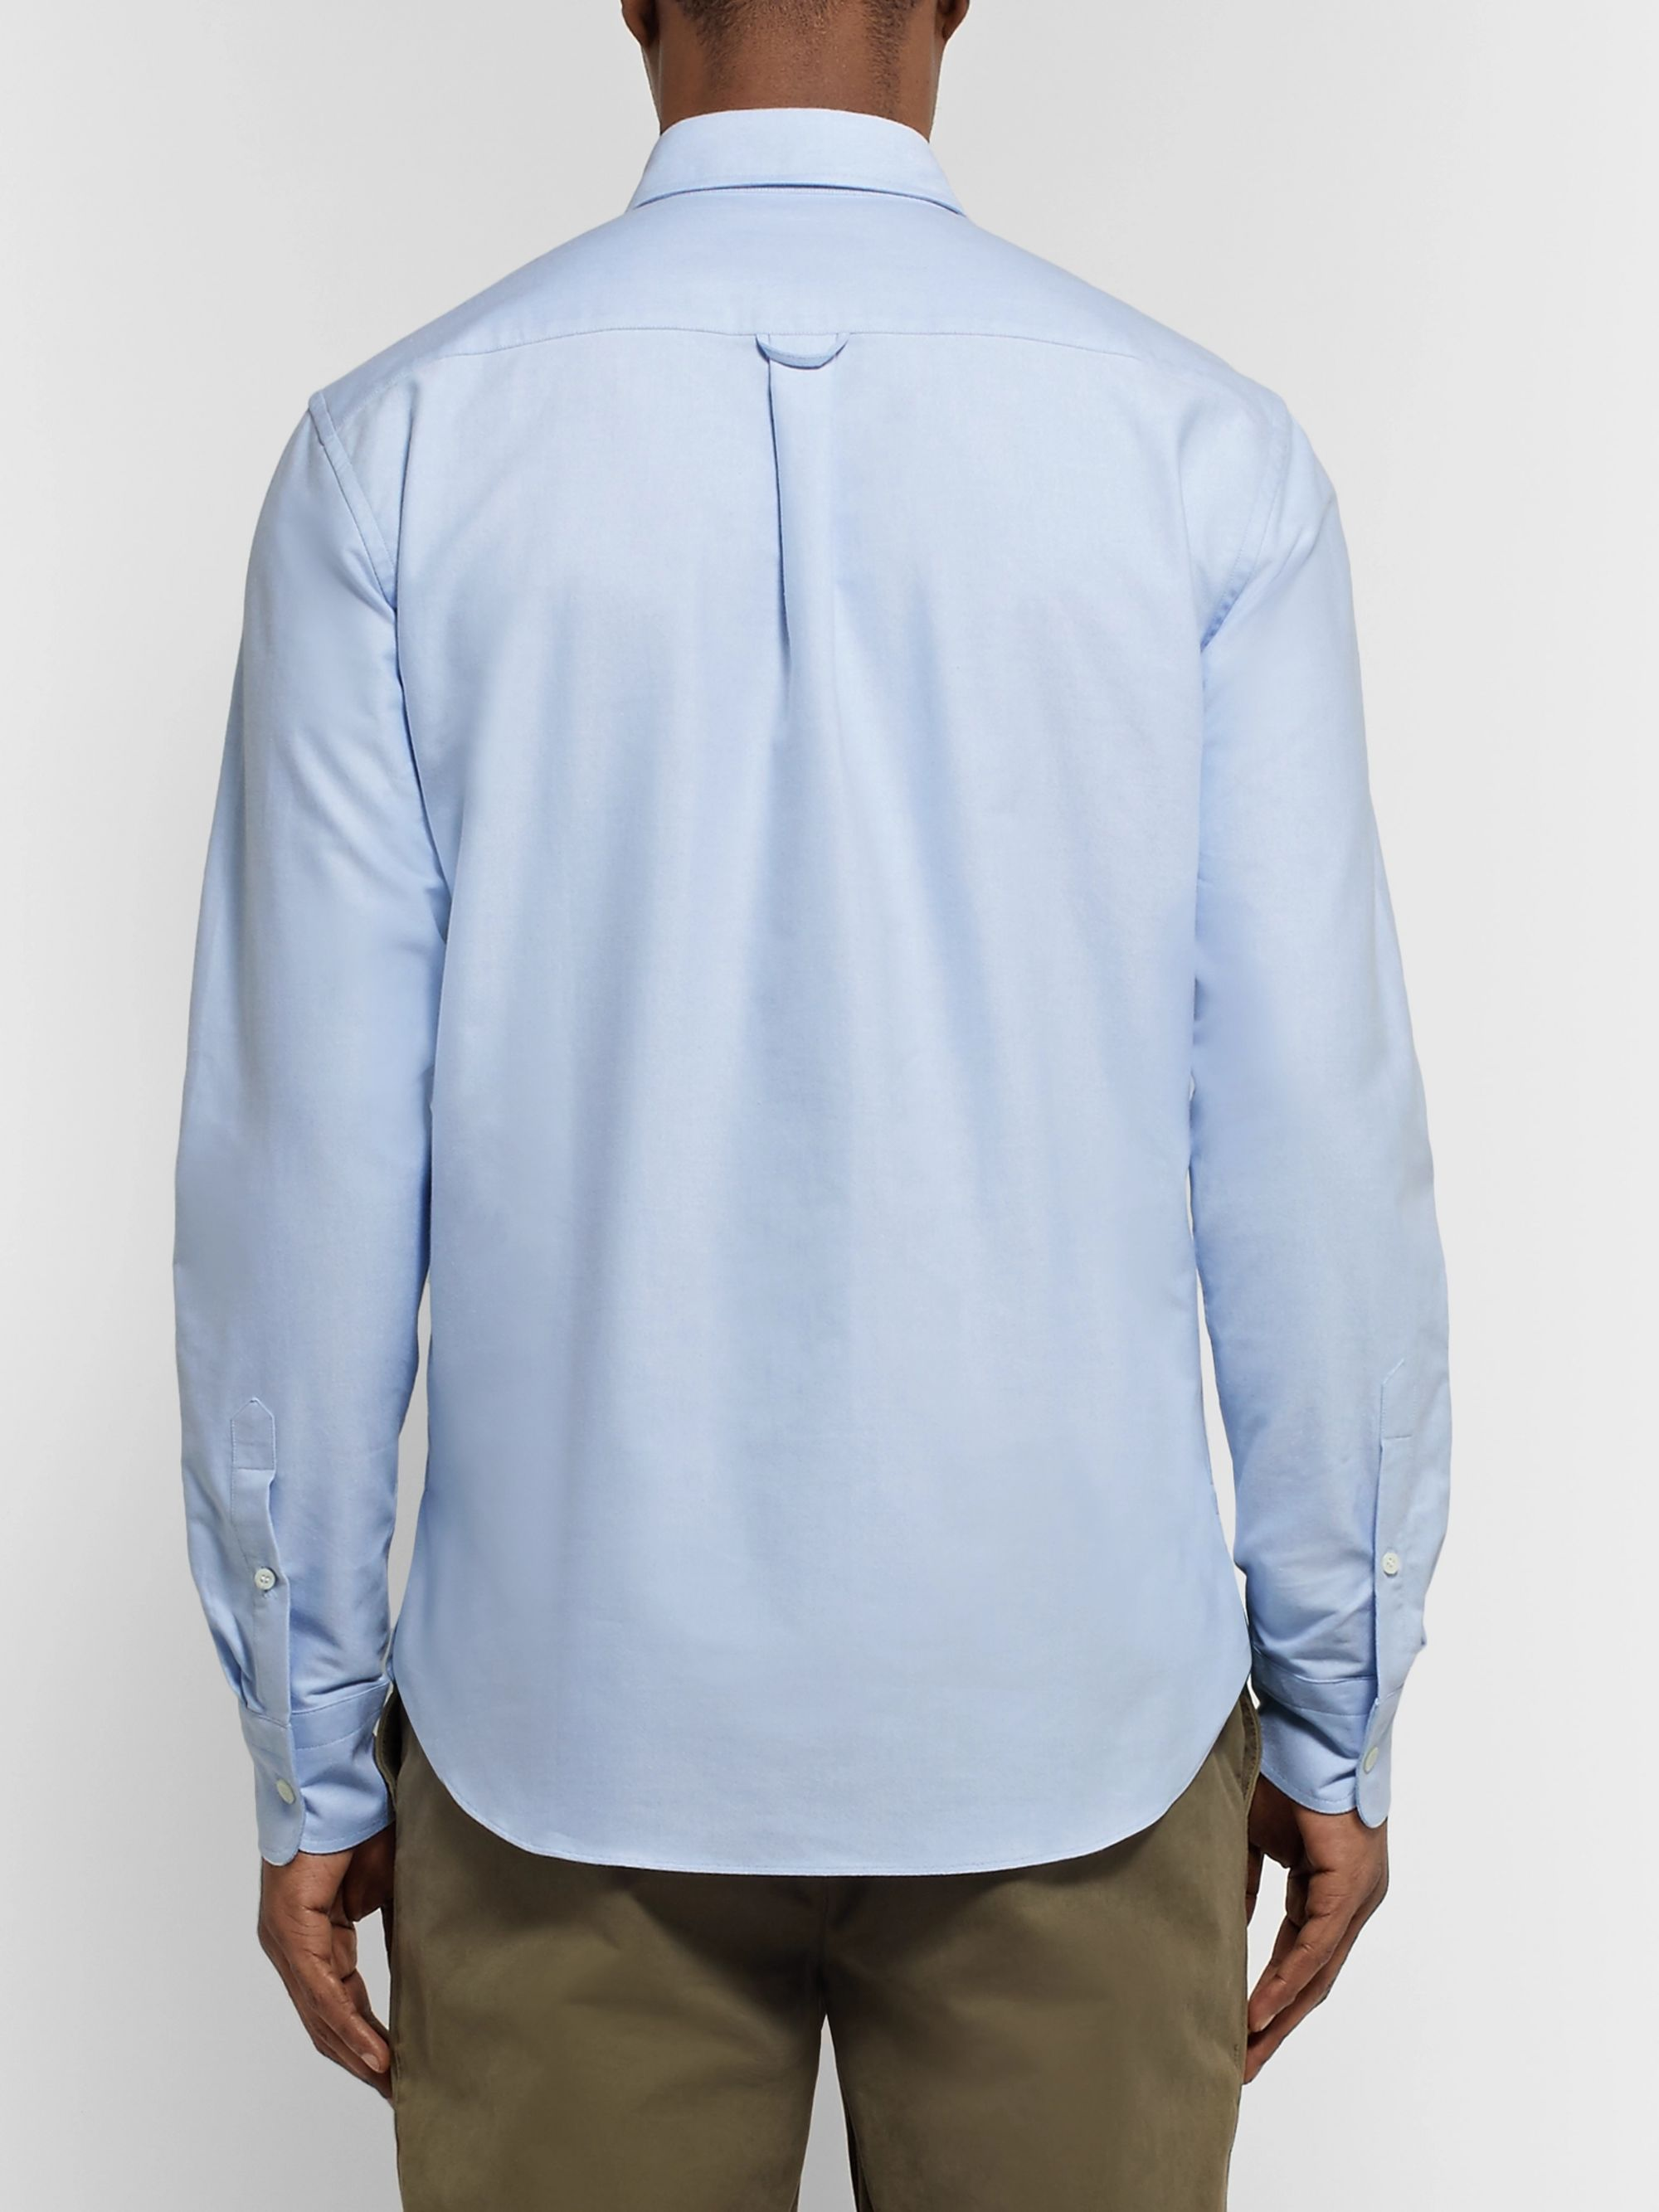 Maison Kitsuné Slim-Fit Button-Down Collar Cotton Oxford Shirt